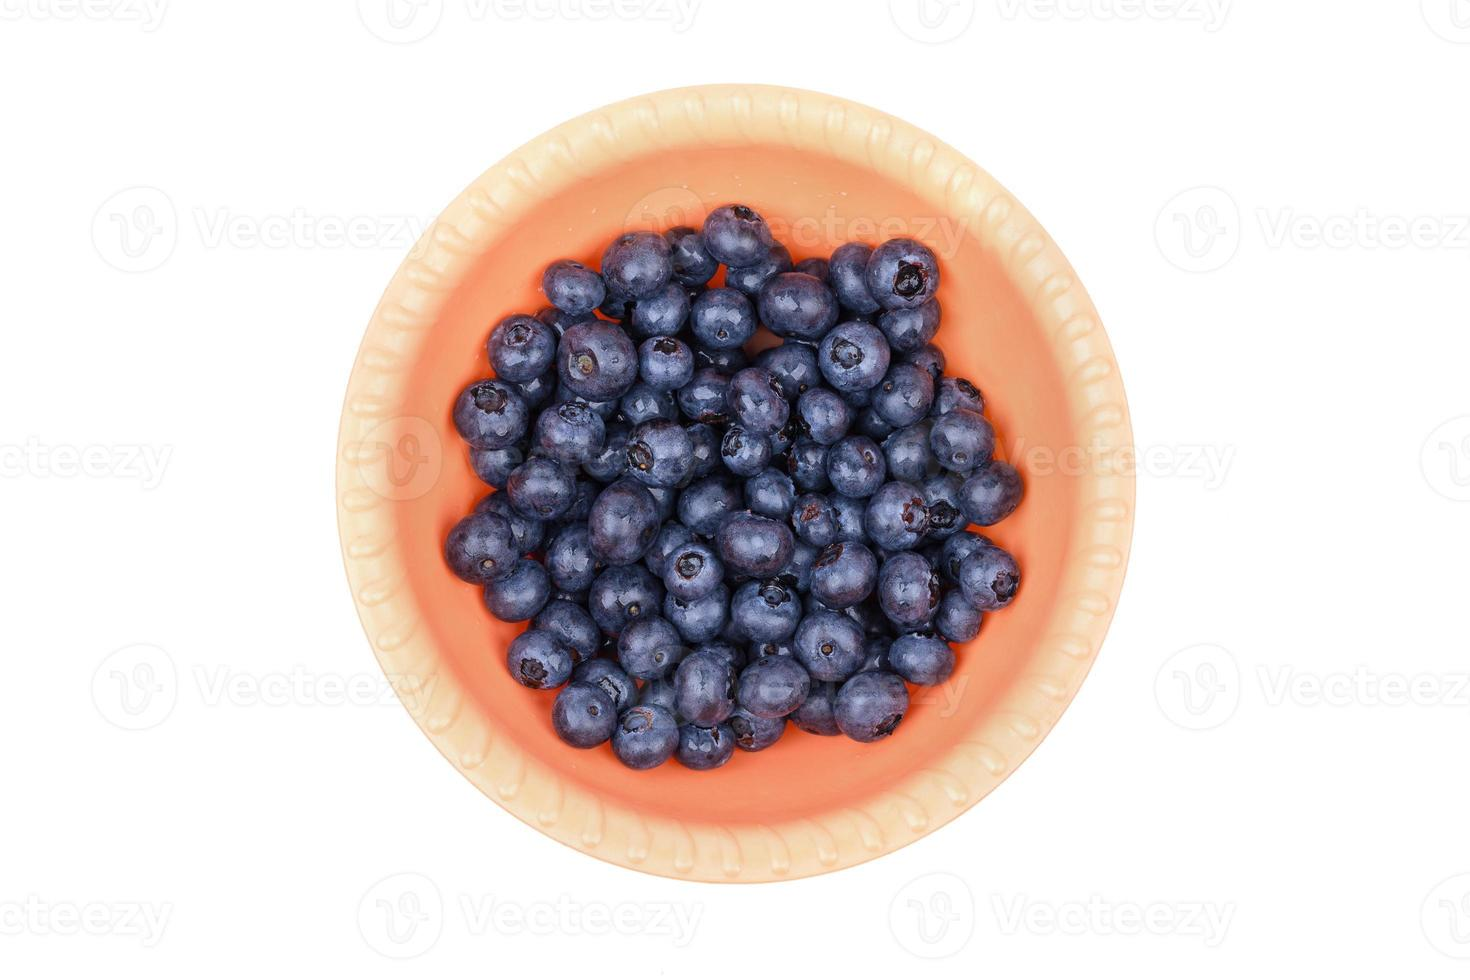 Blueberries in a plastic plate photo